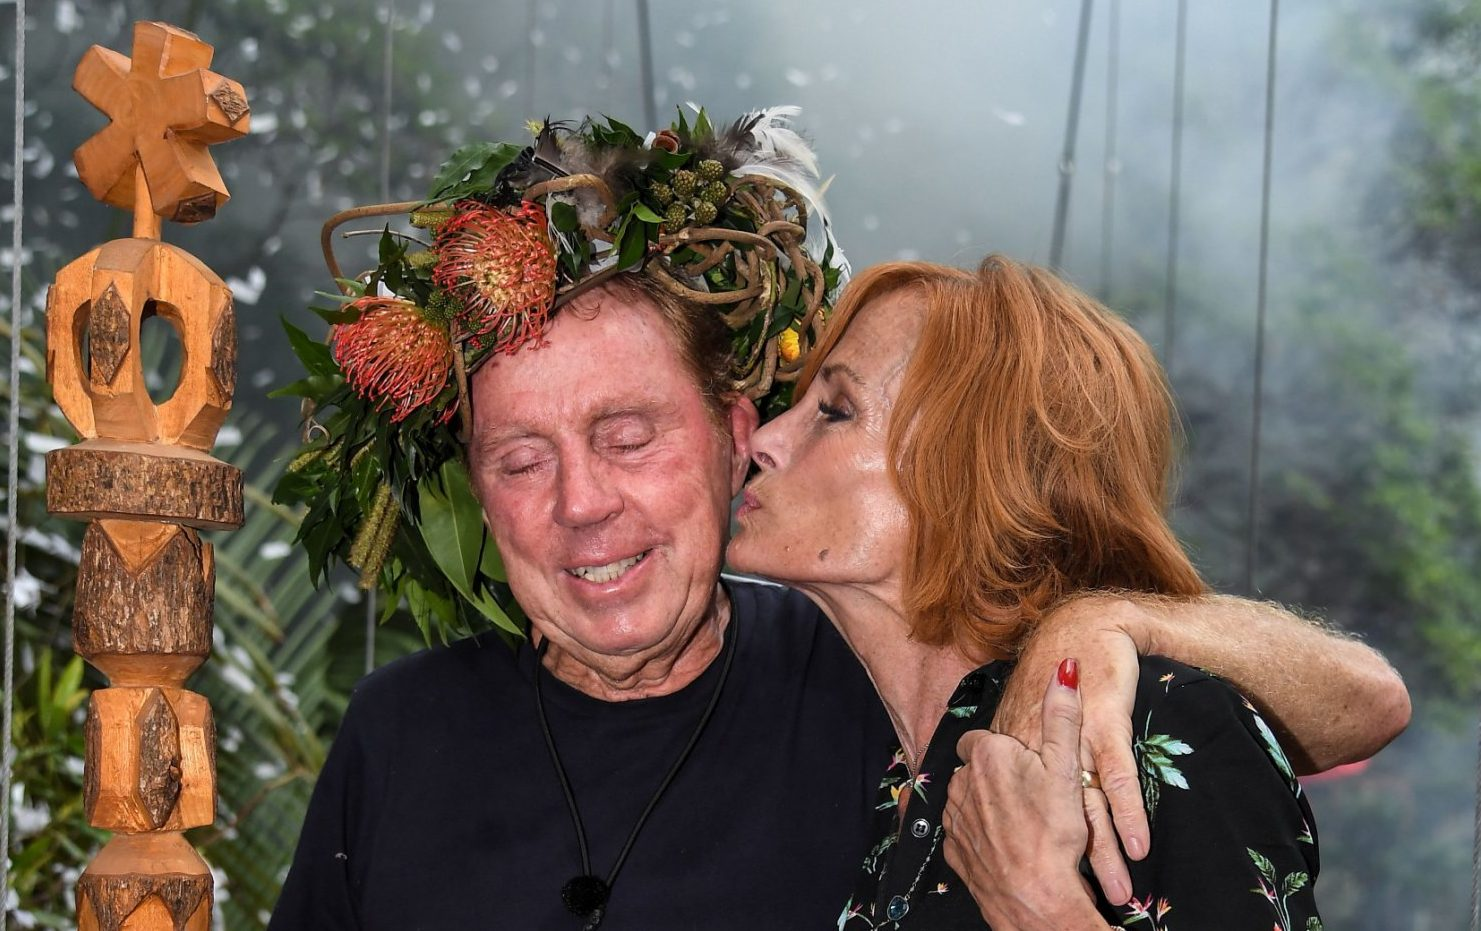 Sandra Redknapp 'finds it hard' to be in the limelight following Harry's I'm a Celeb win